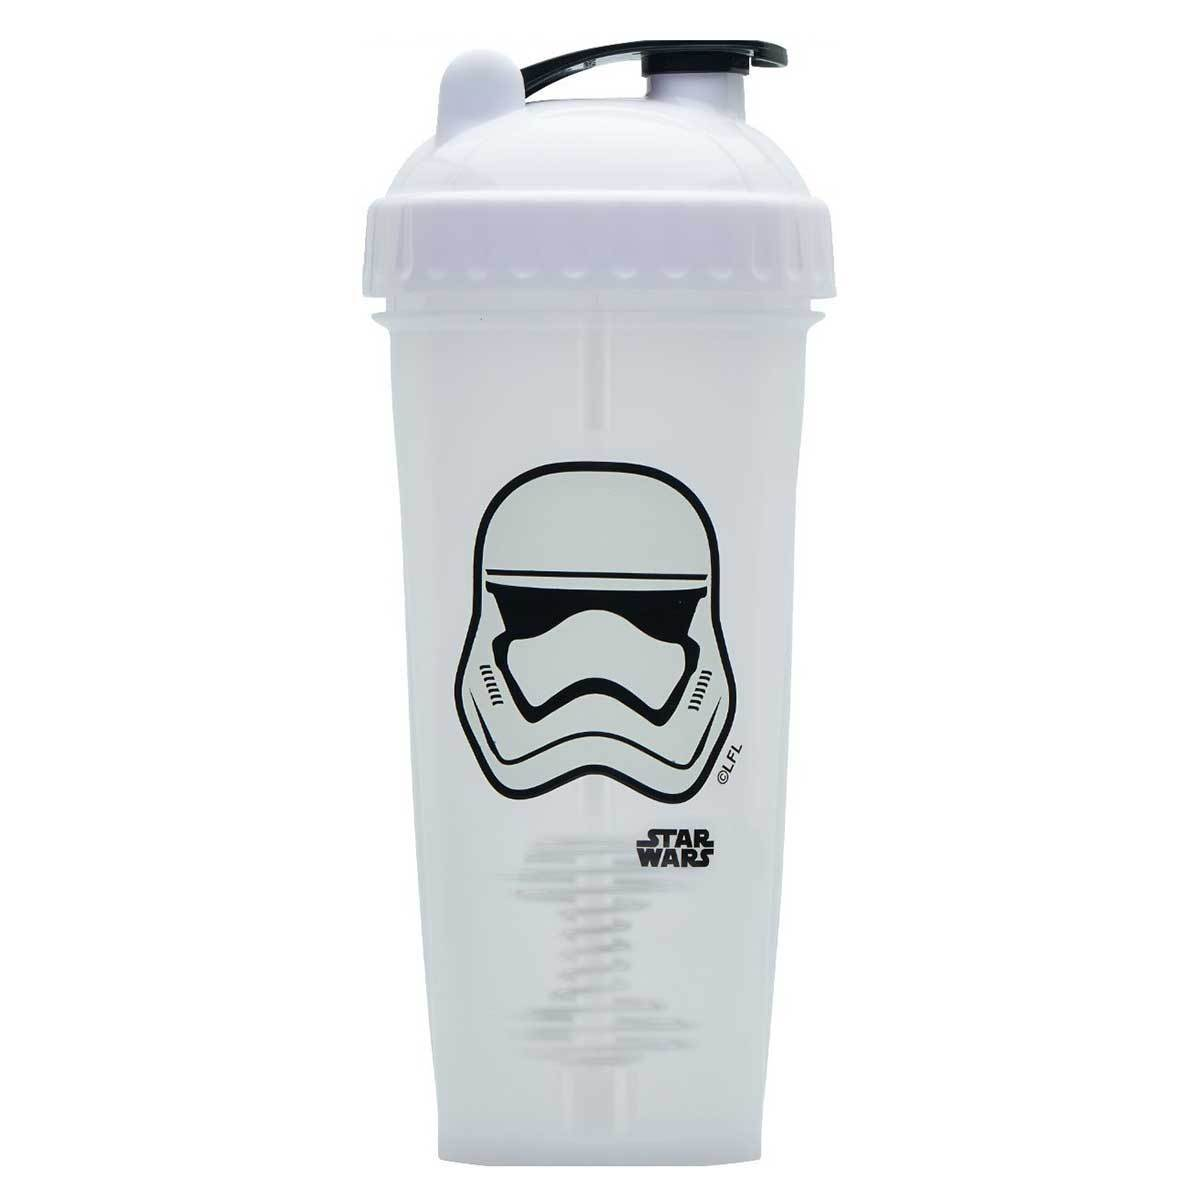 Star Wars First World Order Stormtrooper Shaker Bottle 28oz Fitness Accessories and Apparel PerfectShaker  (1059338027051)